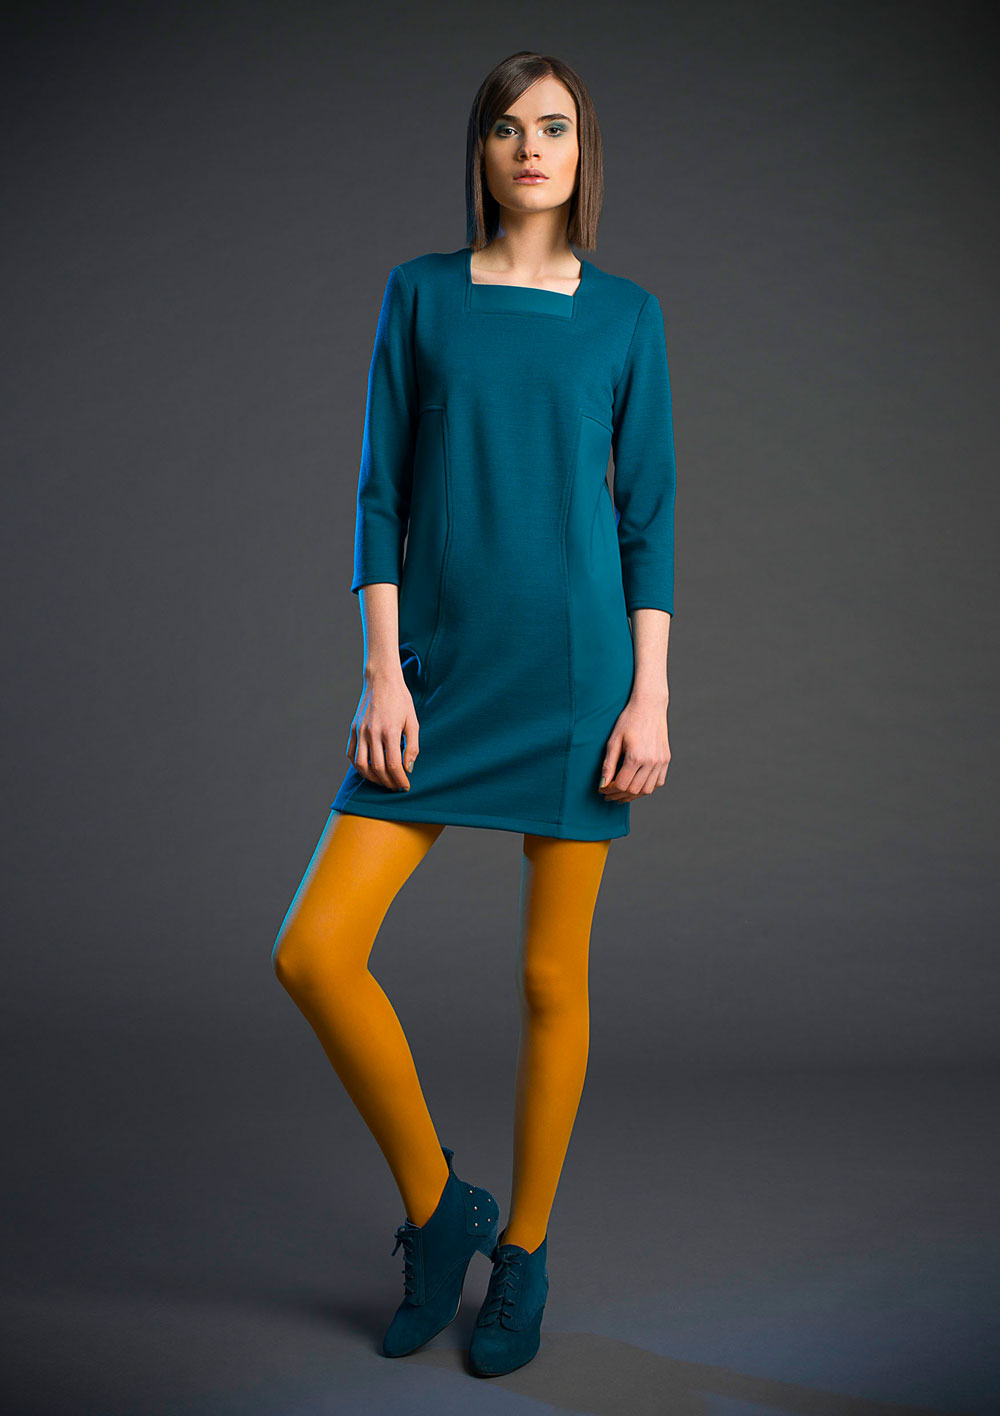 Futurismo Lookbook by Valentina Livan